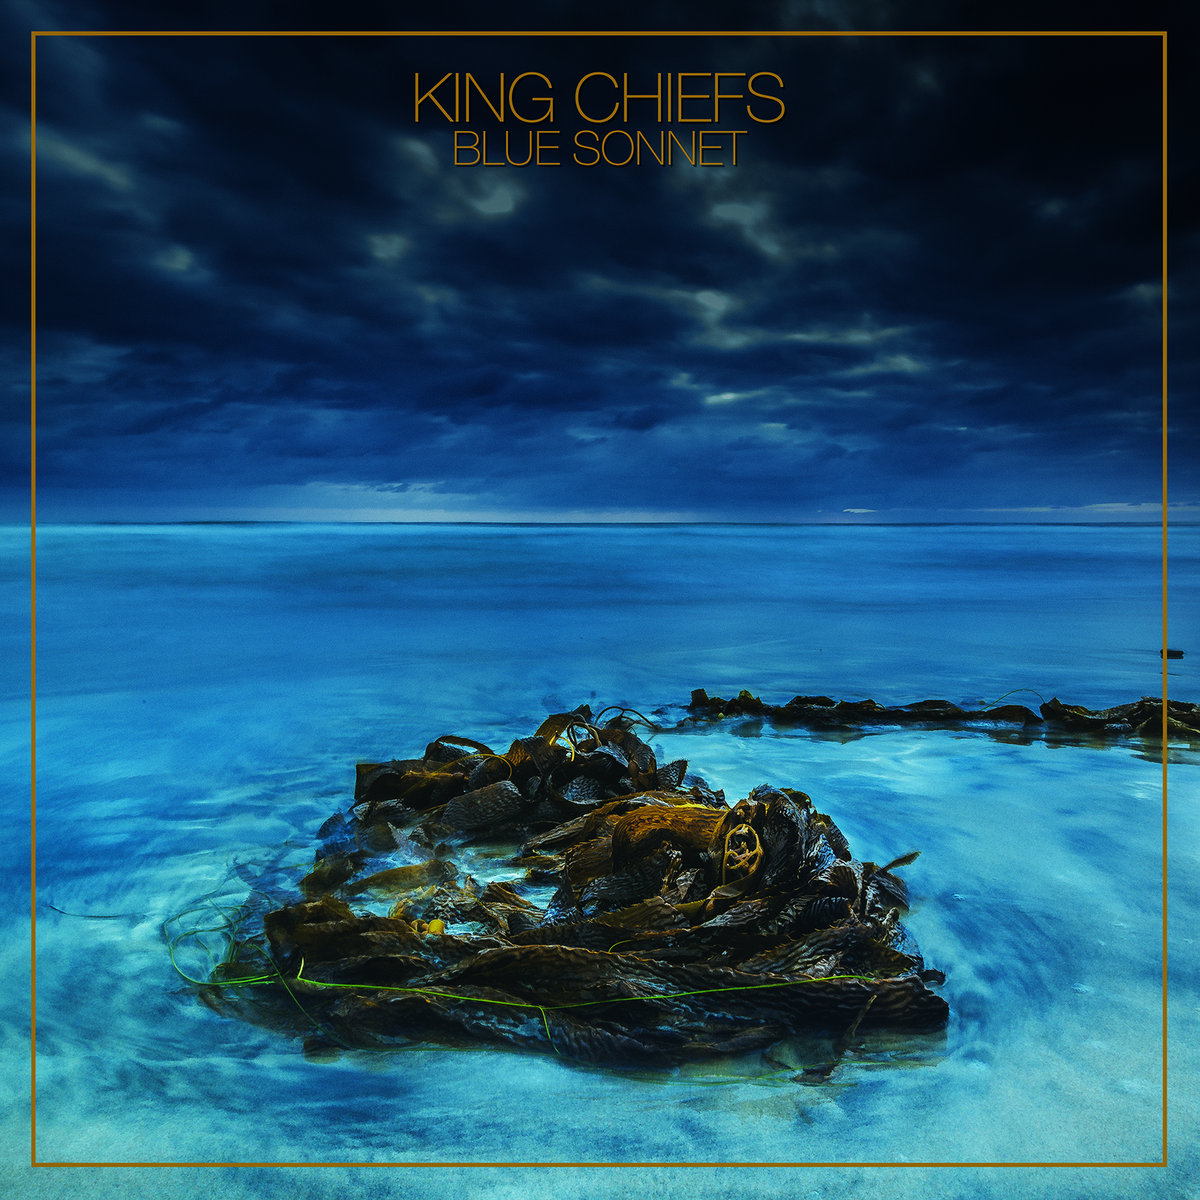 King Chiefs Blue Sonnet